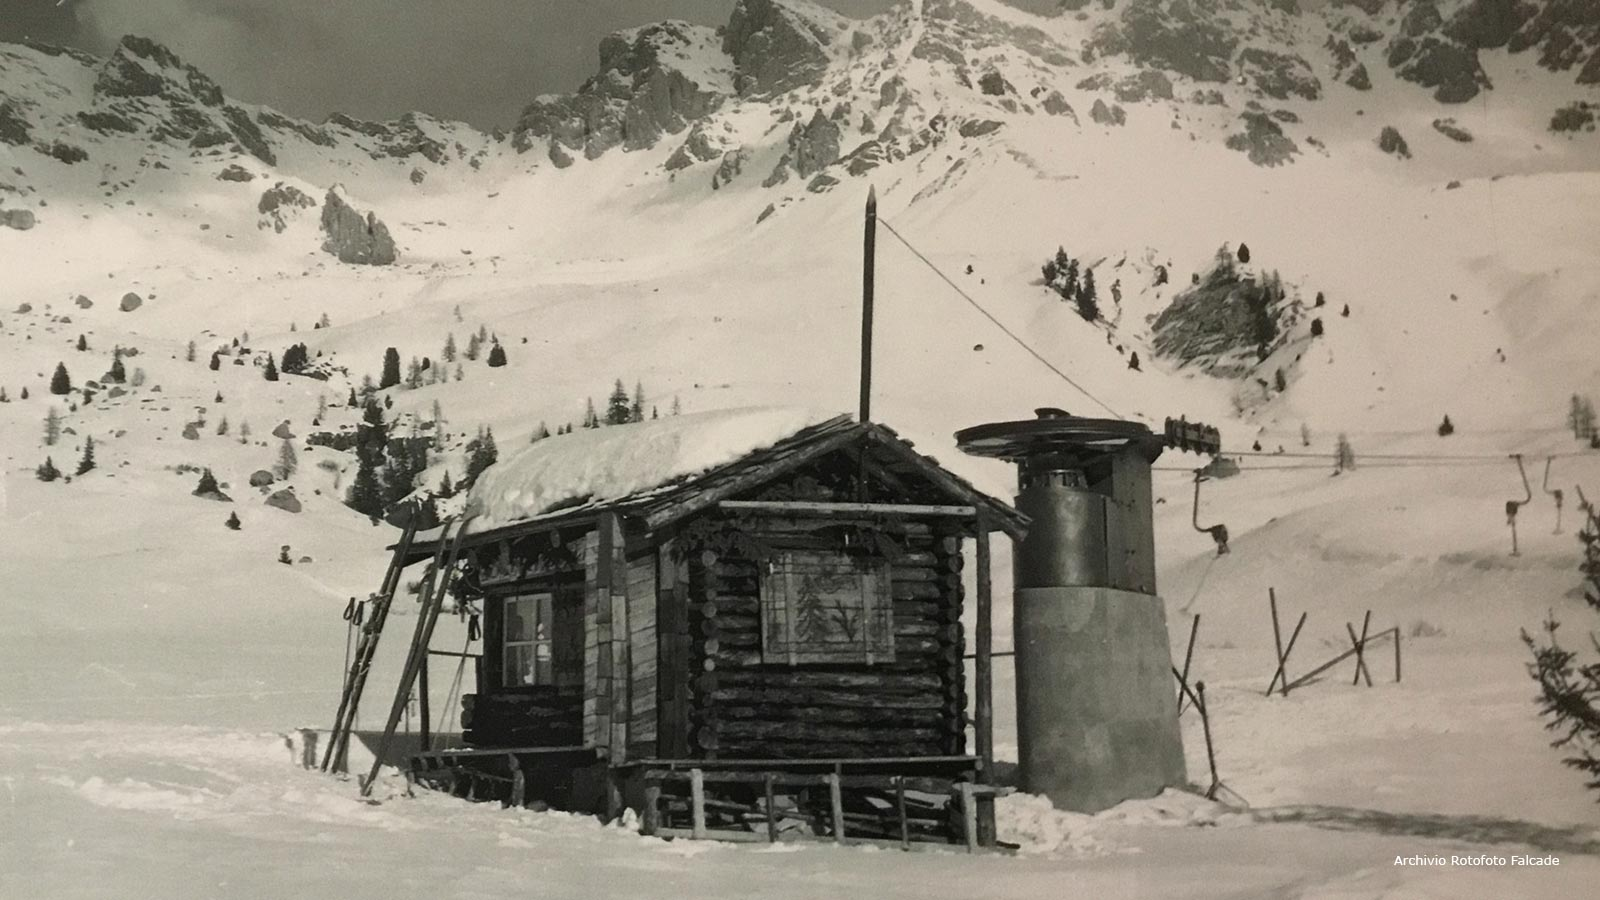 Particular of the old ski lift at San Pellegrino Pass